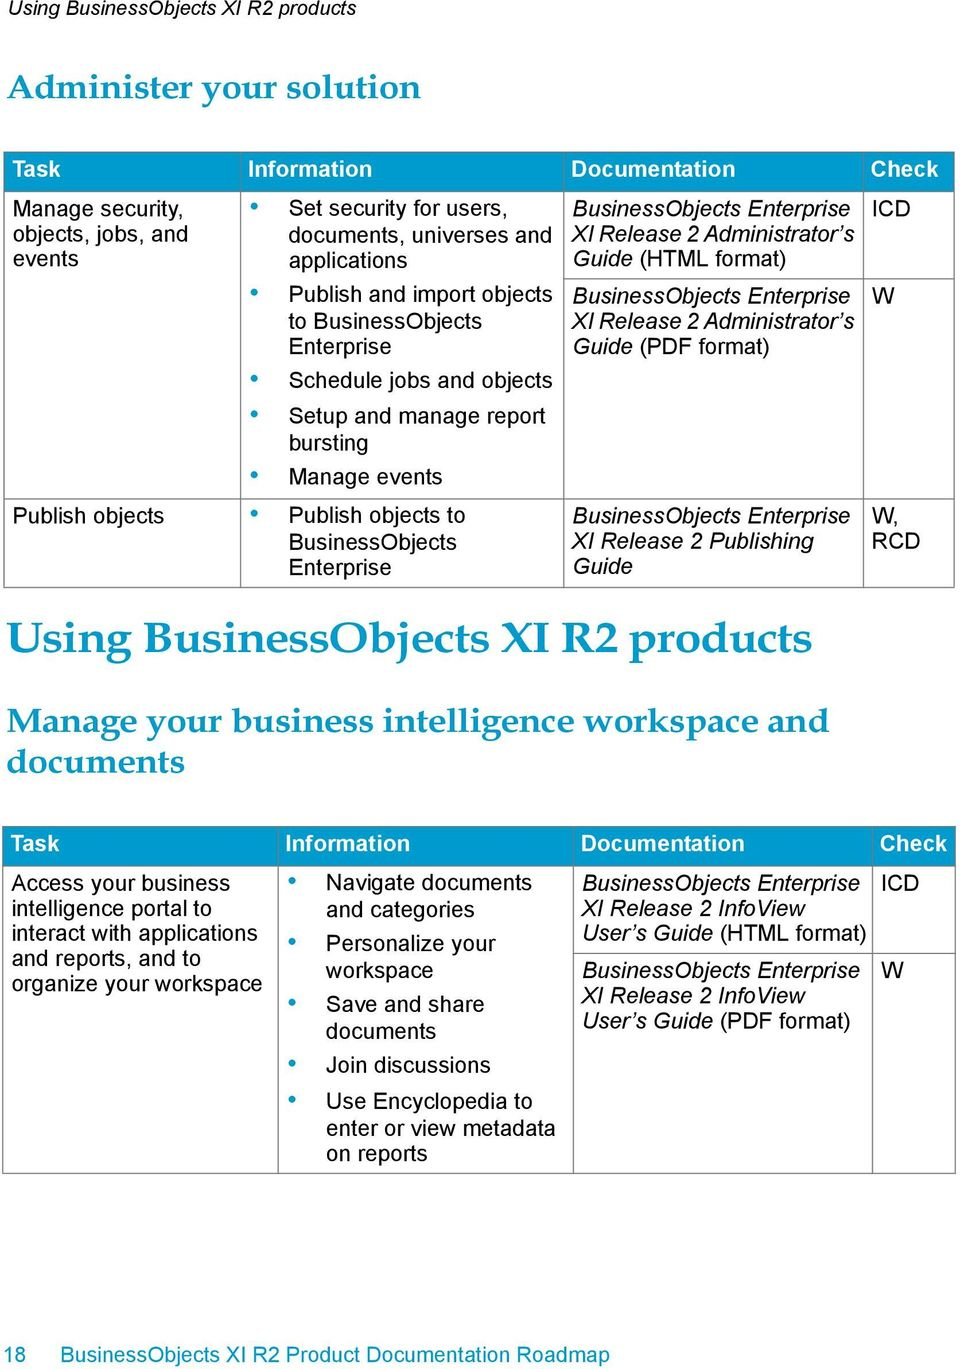 BusinessObjects XI R2 Product Documentation Roadmap - PDF